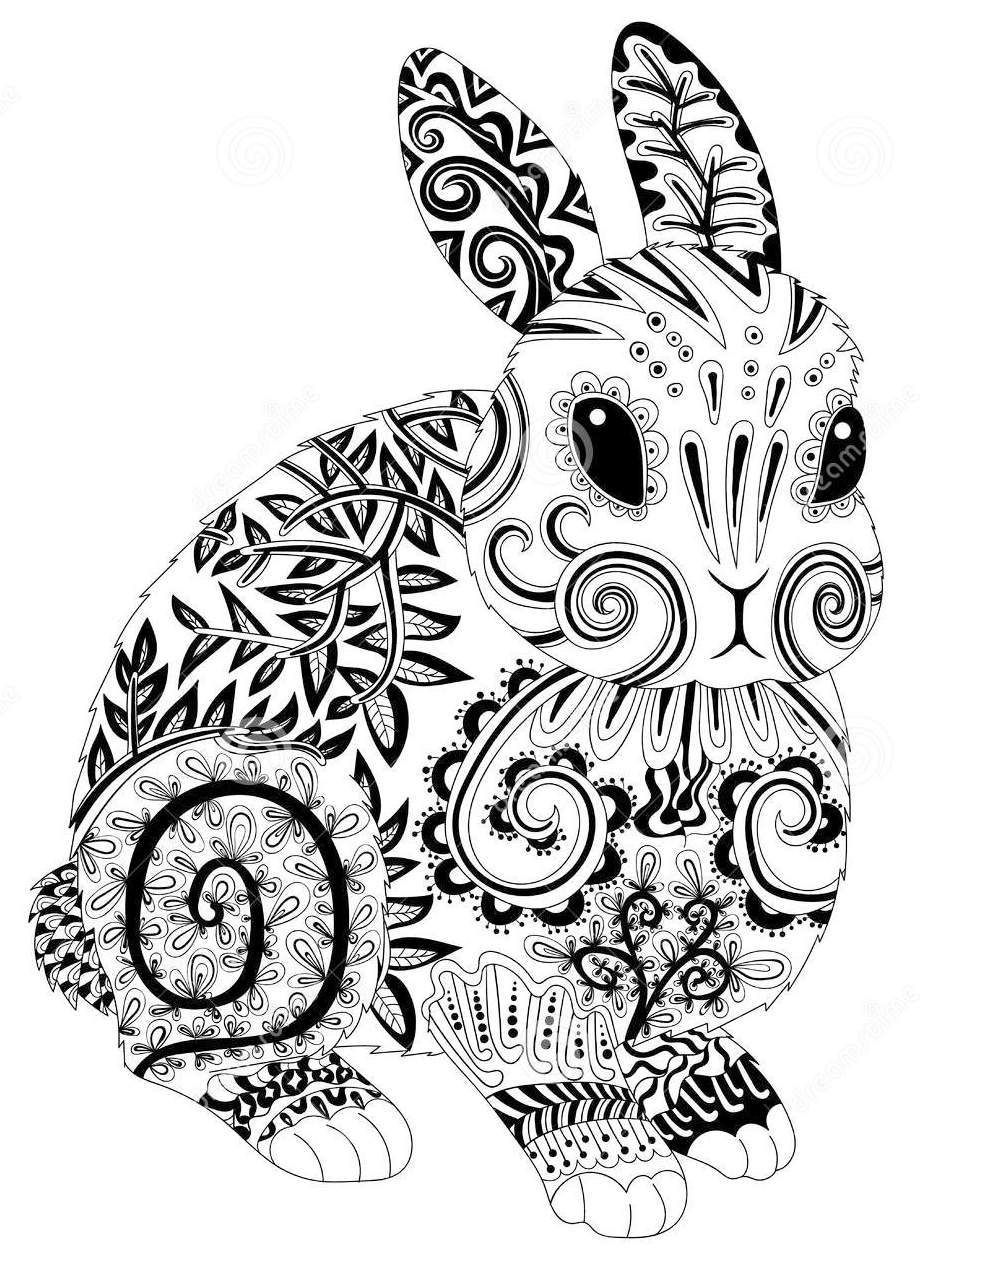 The Cute Rabbit Zentangle Coloring Book